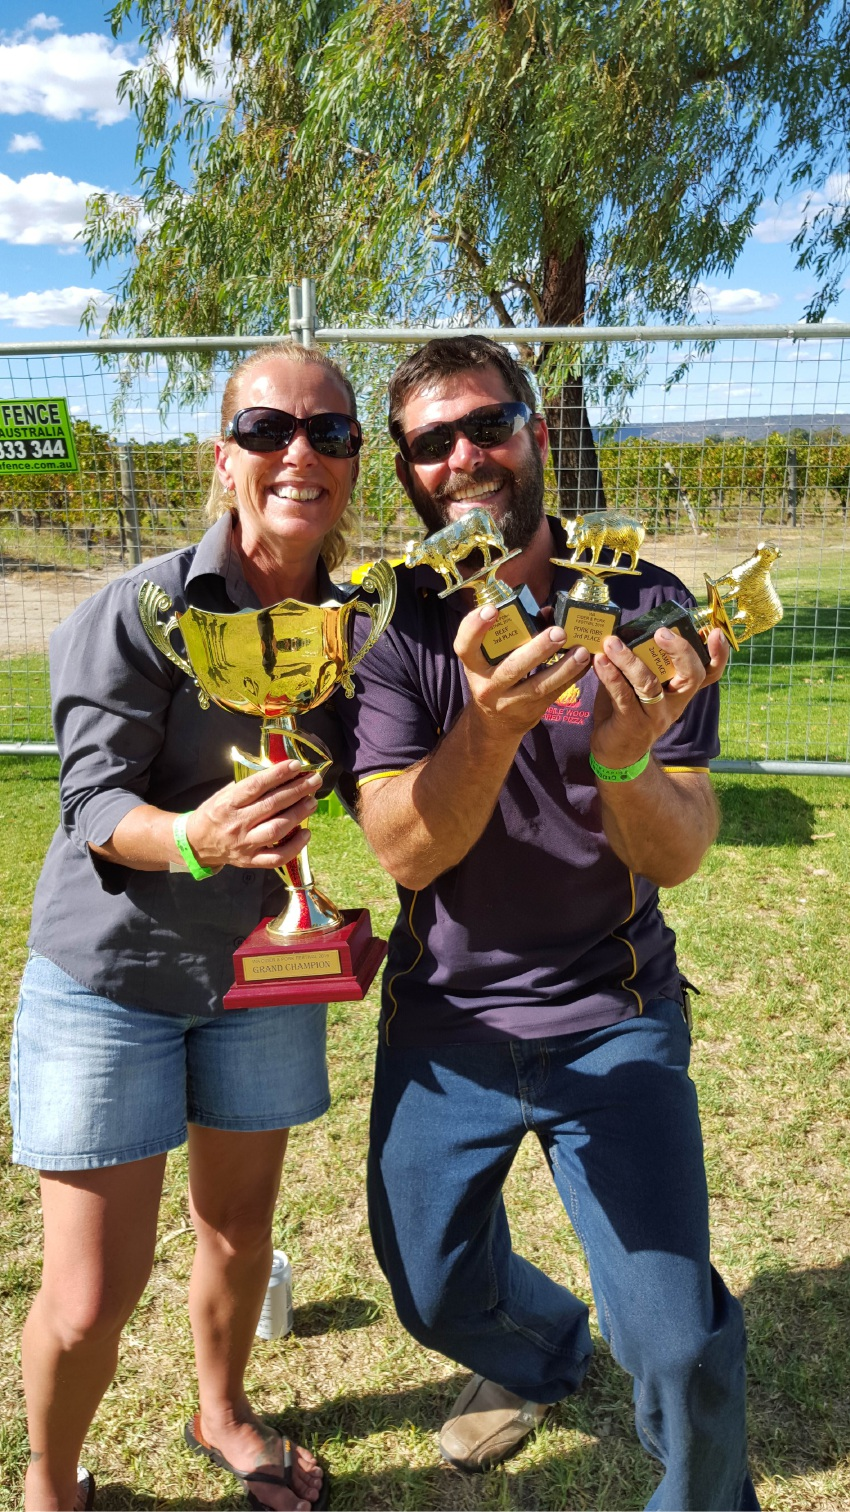 Smoking hot couple win barbecue prizes